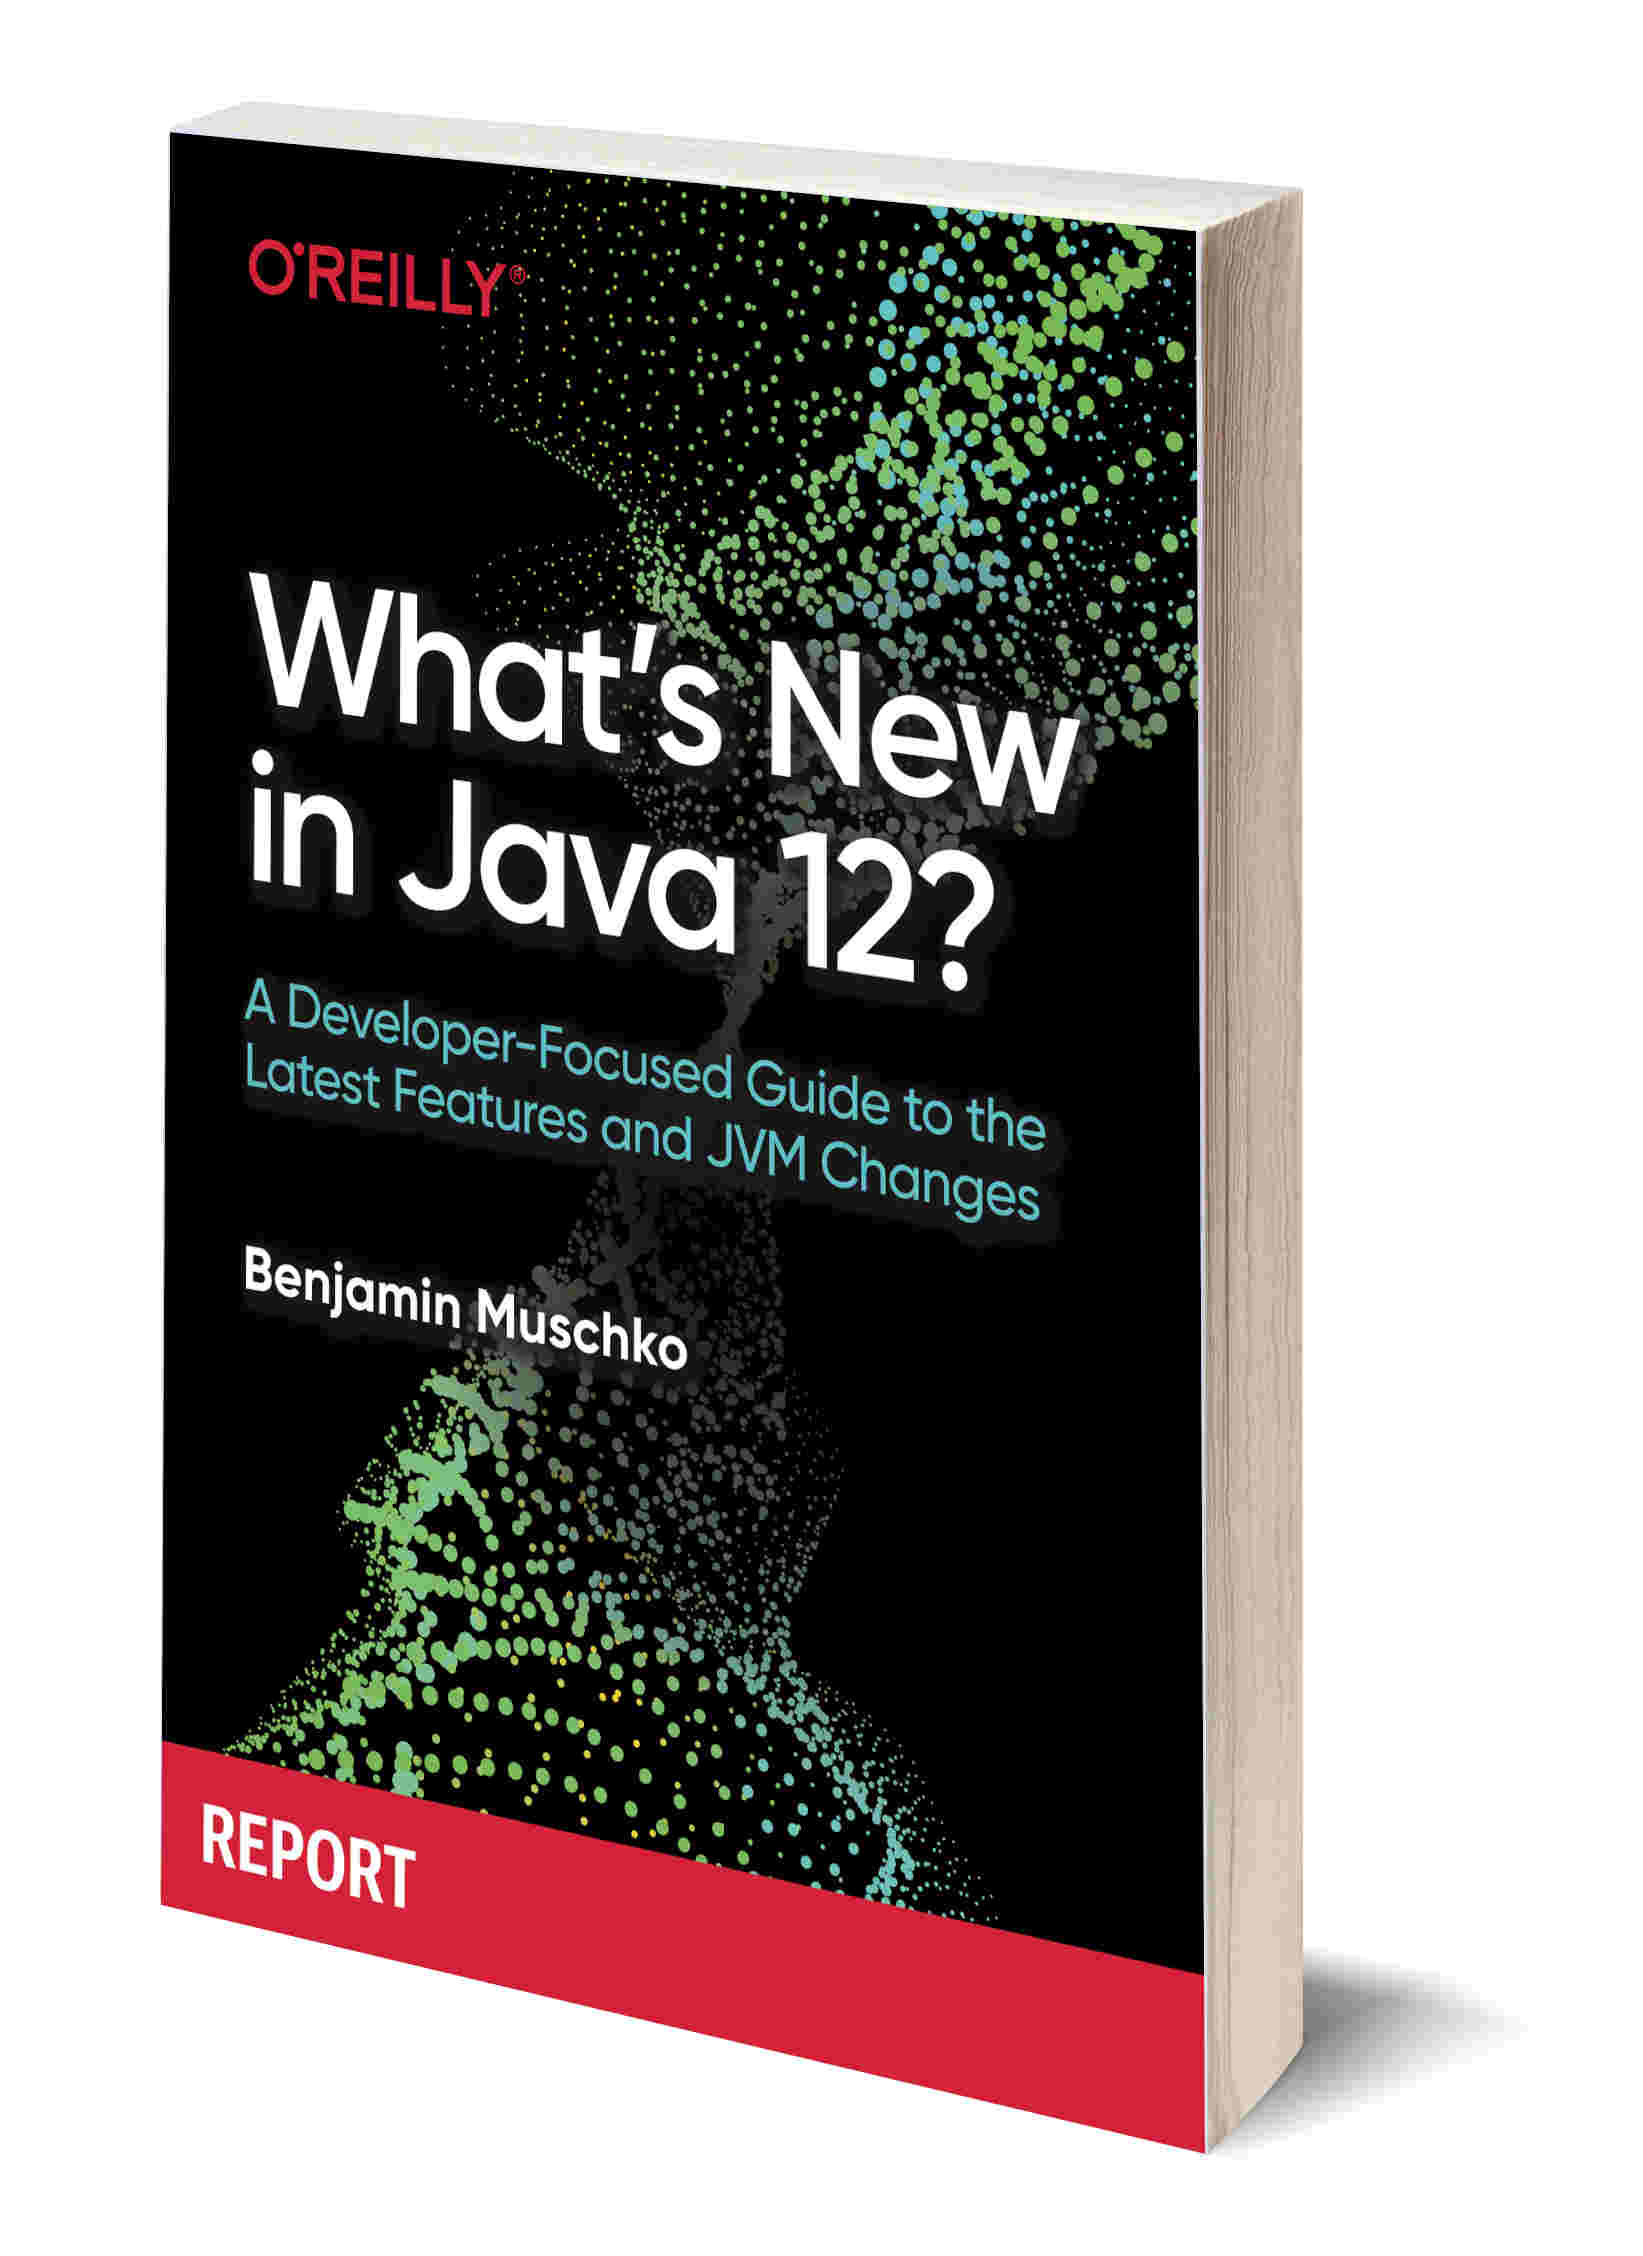 What's New in Java 12?